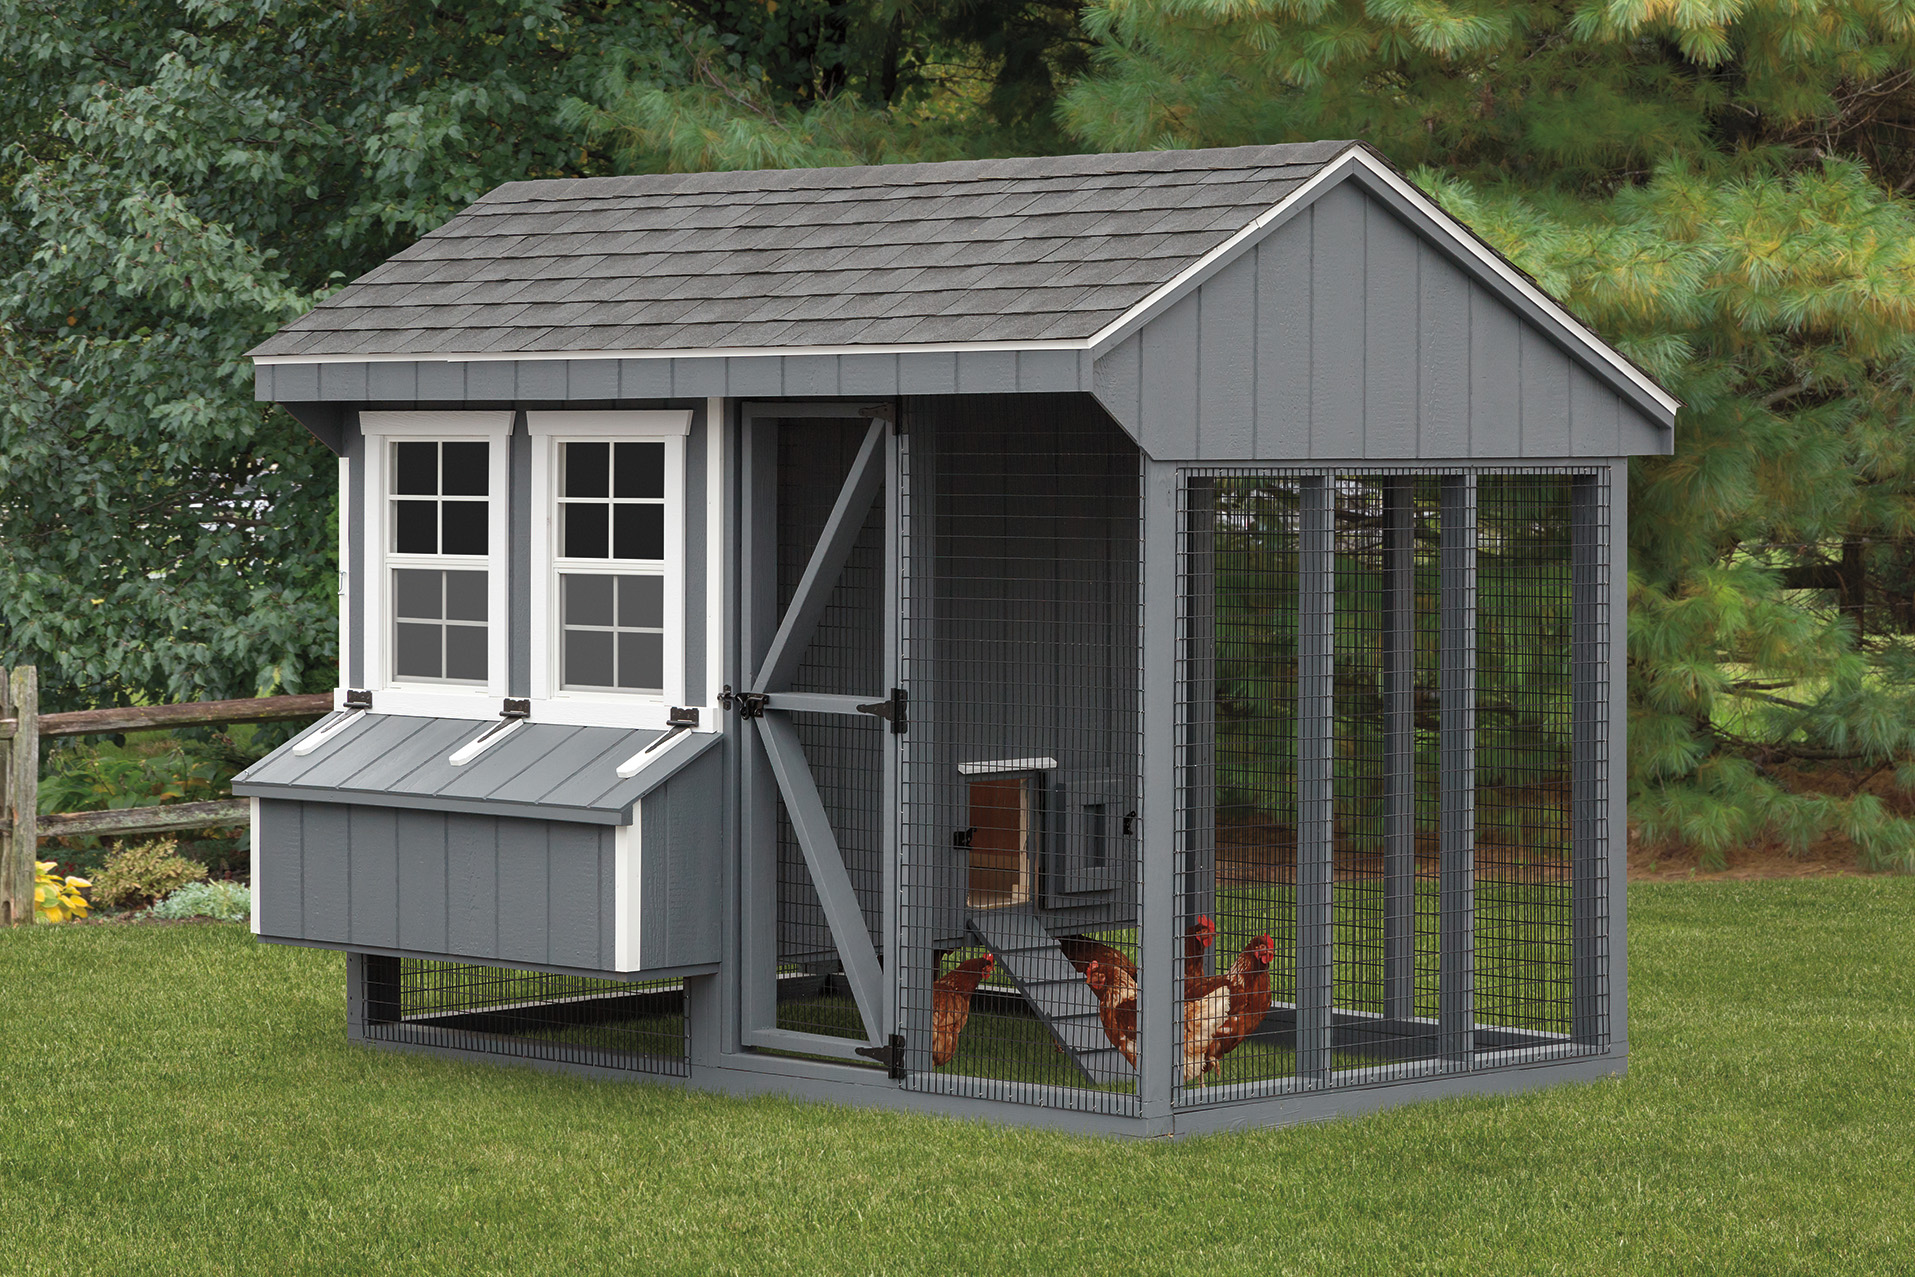 Chicken coops for sale for Chicken coop size for 6 chickens